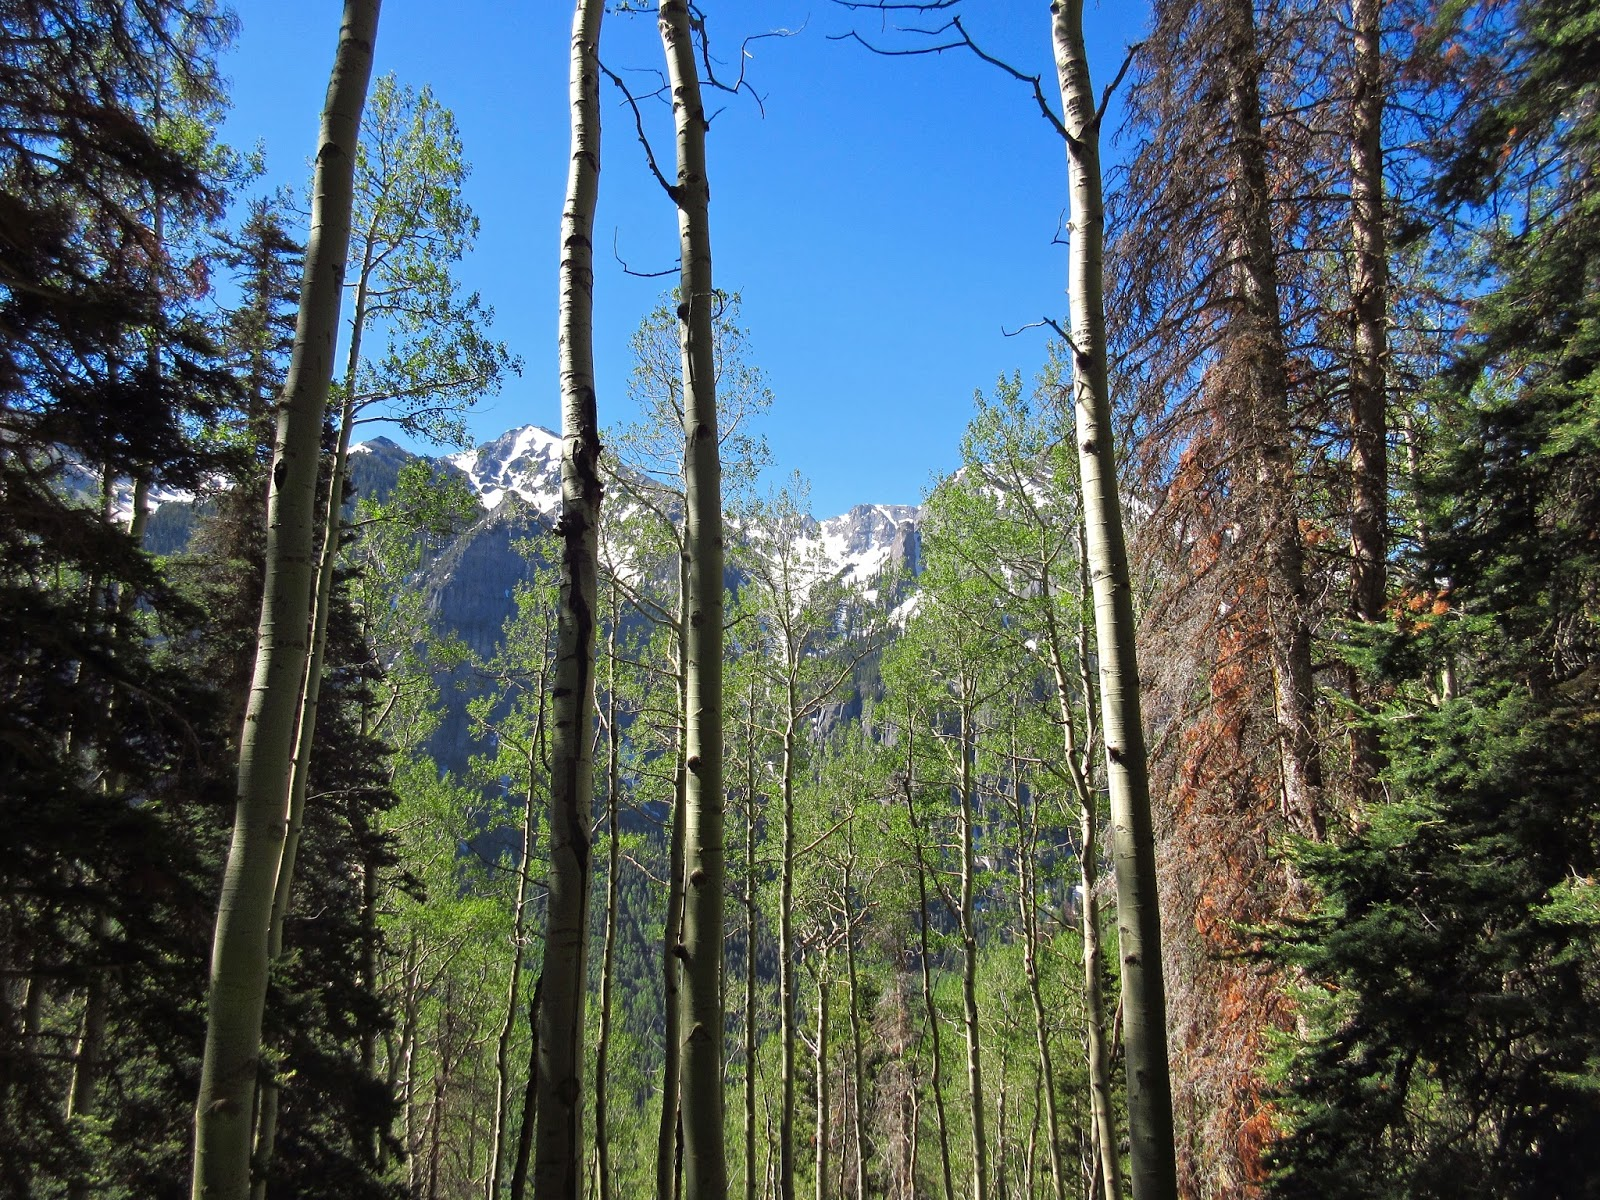 Box canyon blog more mountain spam a windy hike to ouray terrain aspenconifer woods hikest done in autumn just not feelin it mark oh the glacading links i put them on youtube for better clarity publicscrutiny Image collections